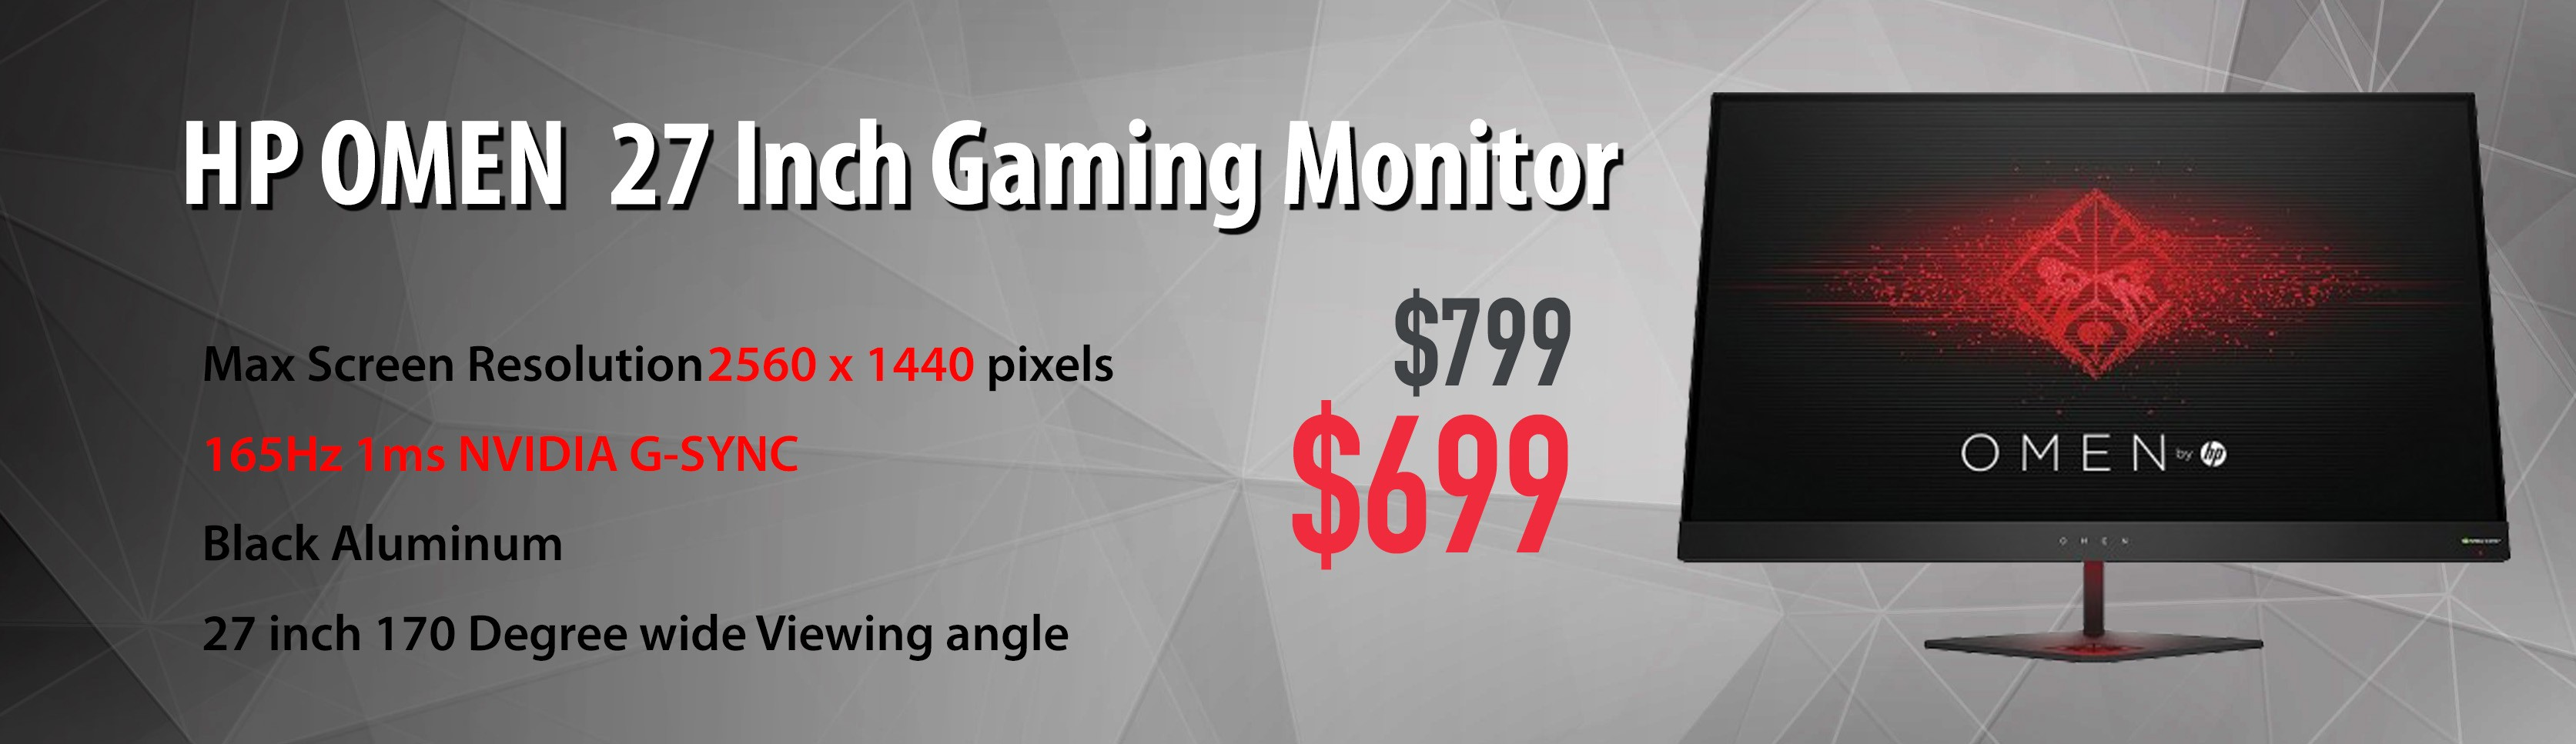 Hp Omen Gaming Monitor G SYNC